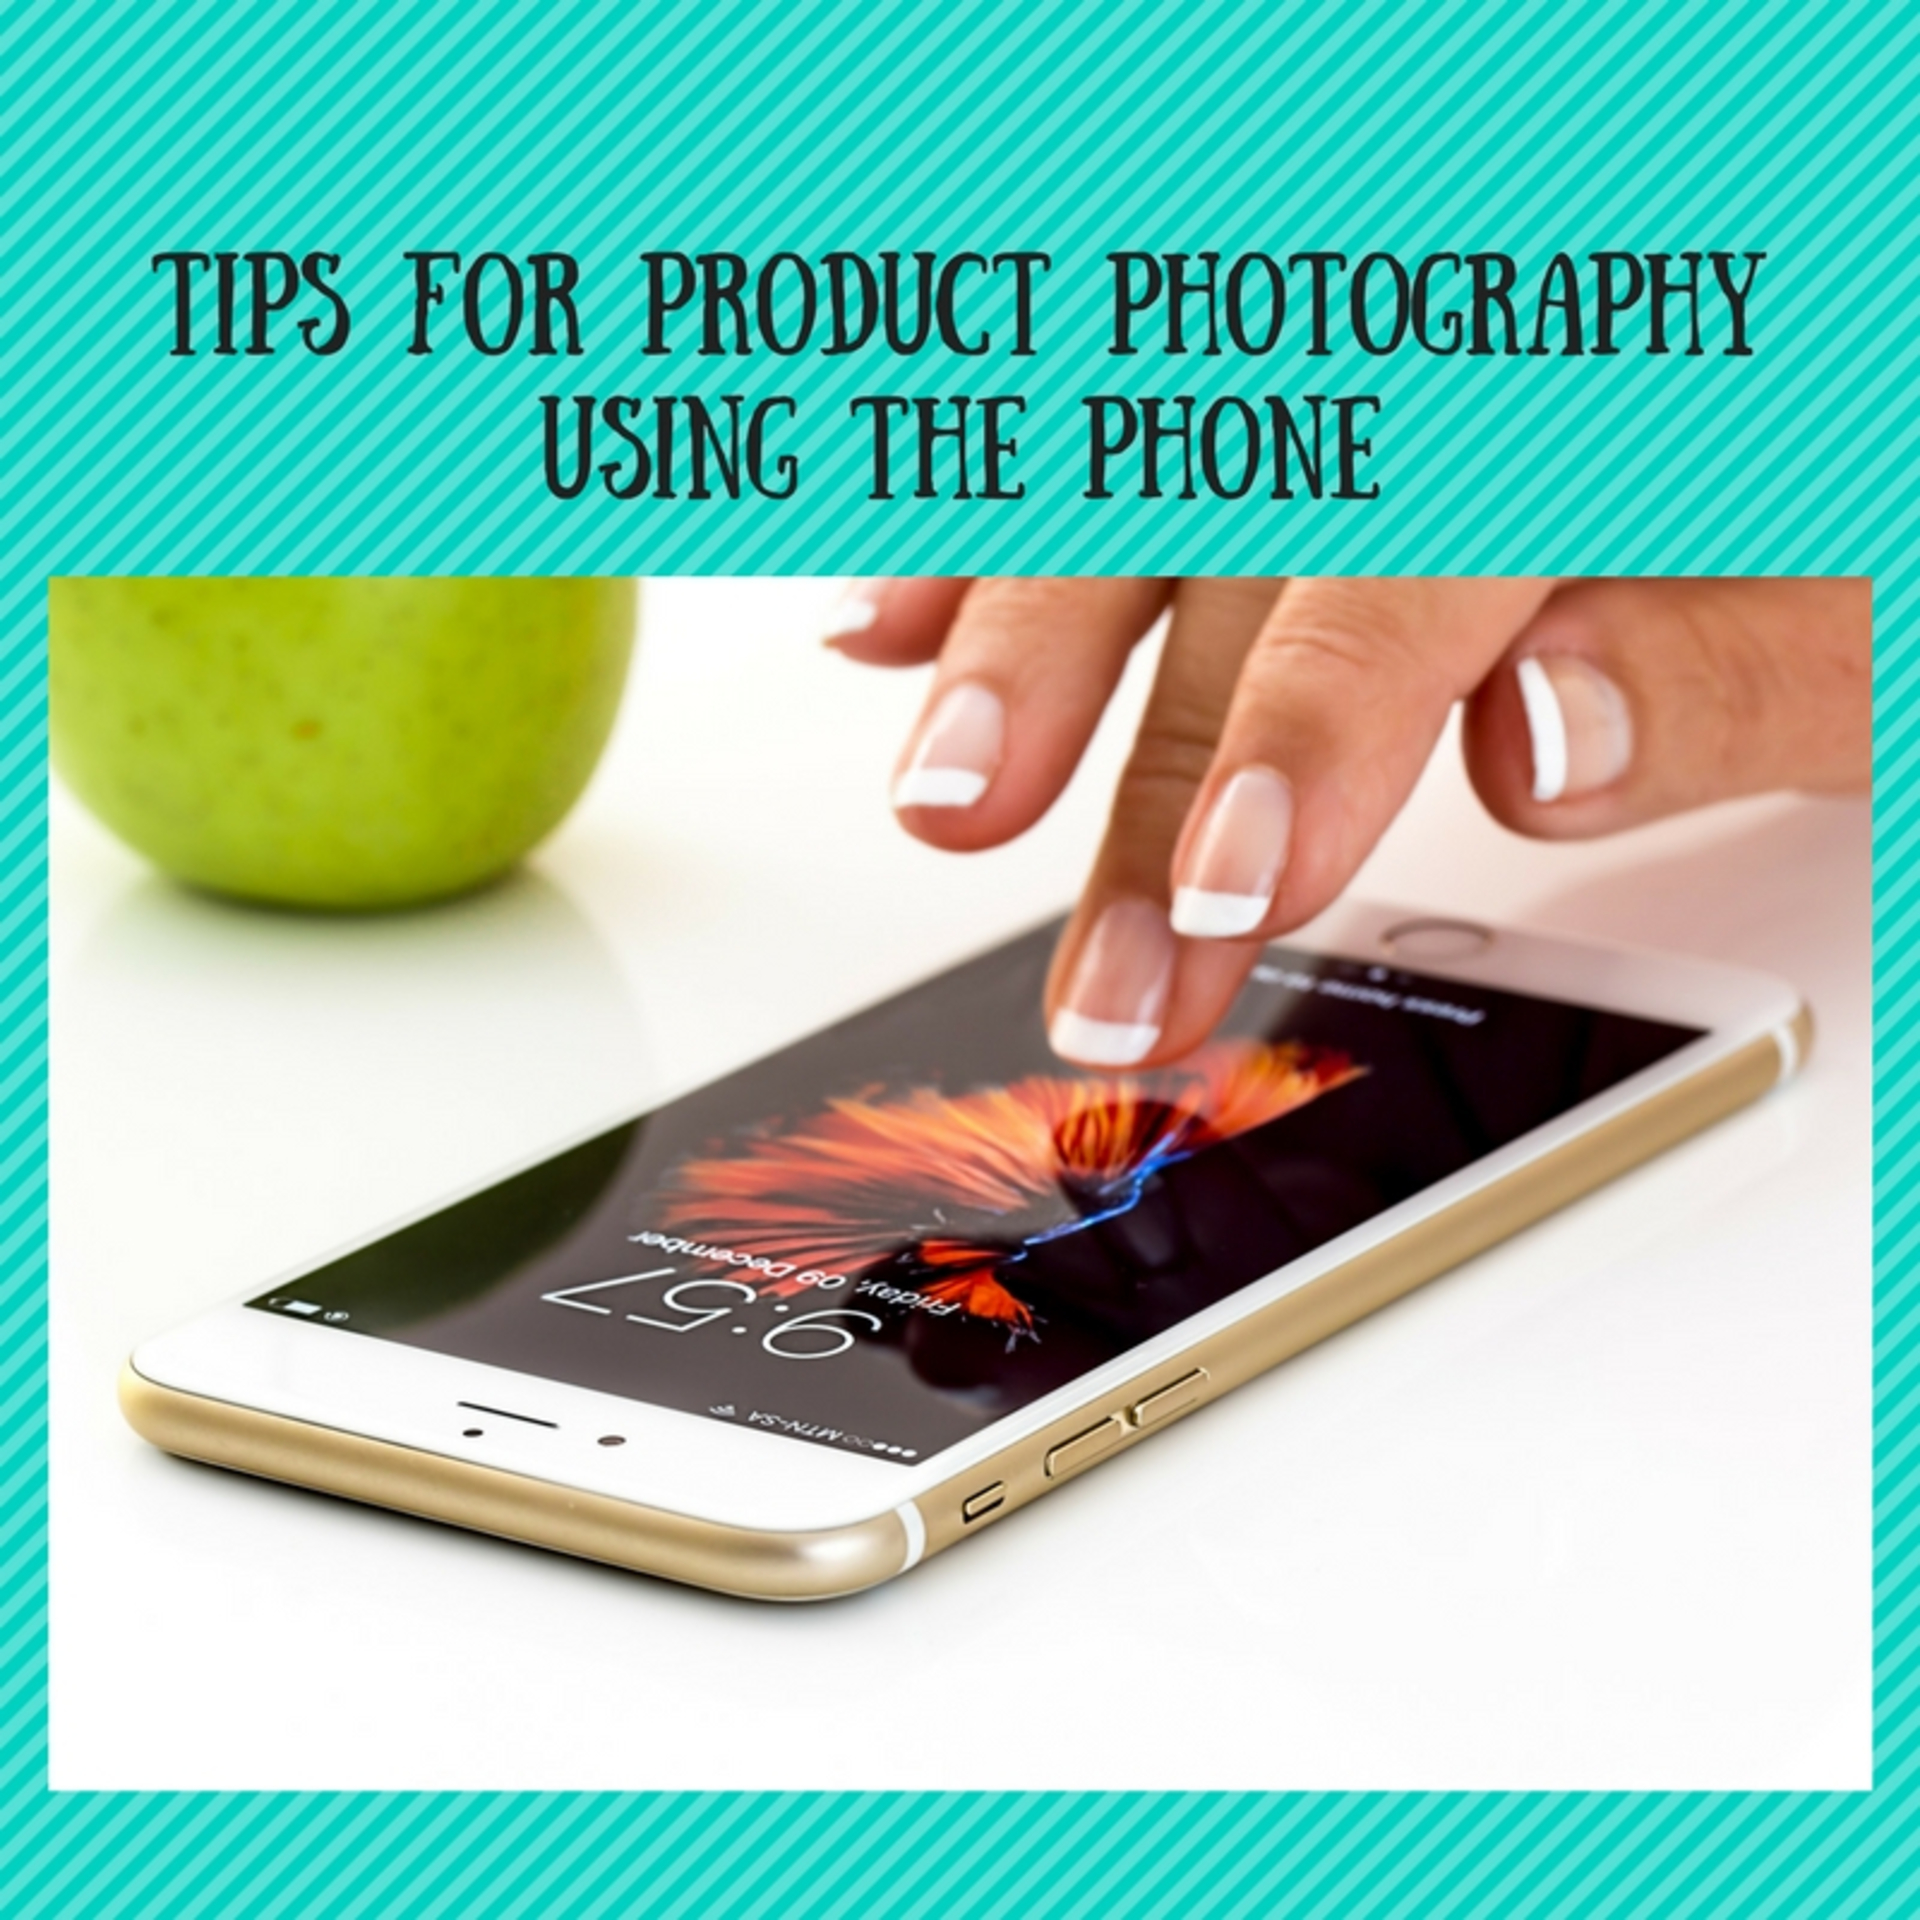 IshtyleAwhile - Tips for product photography on the phone